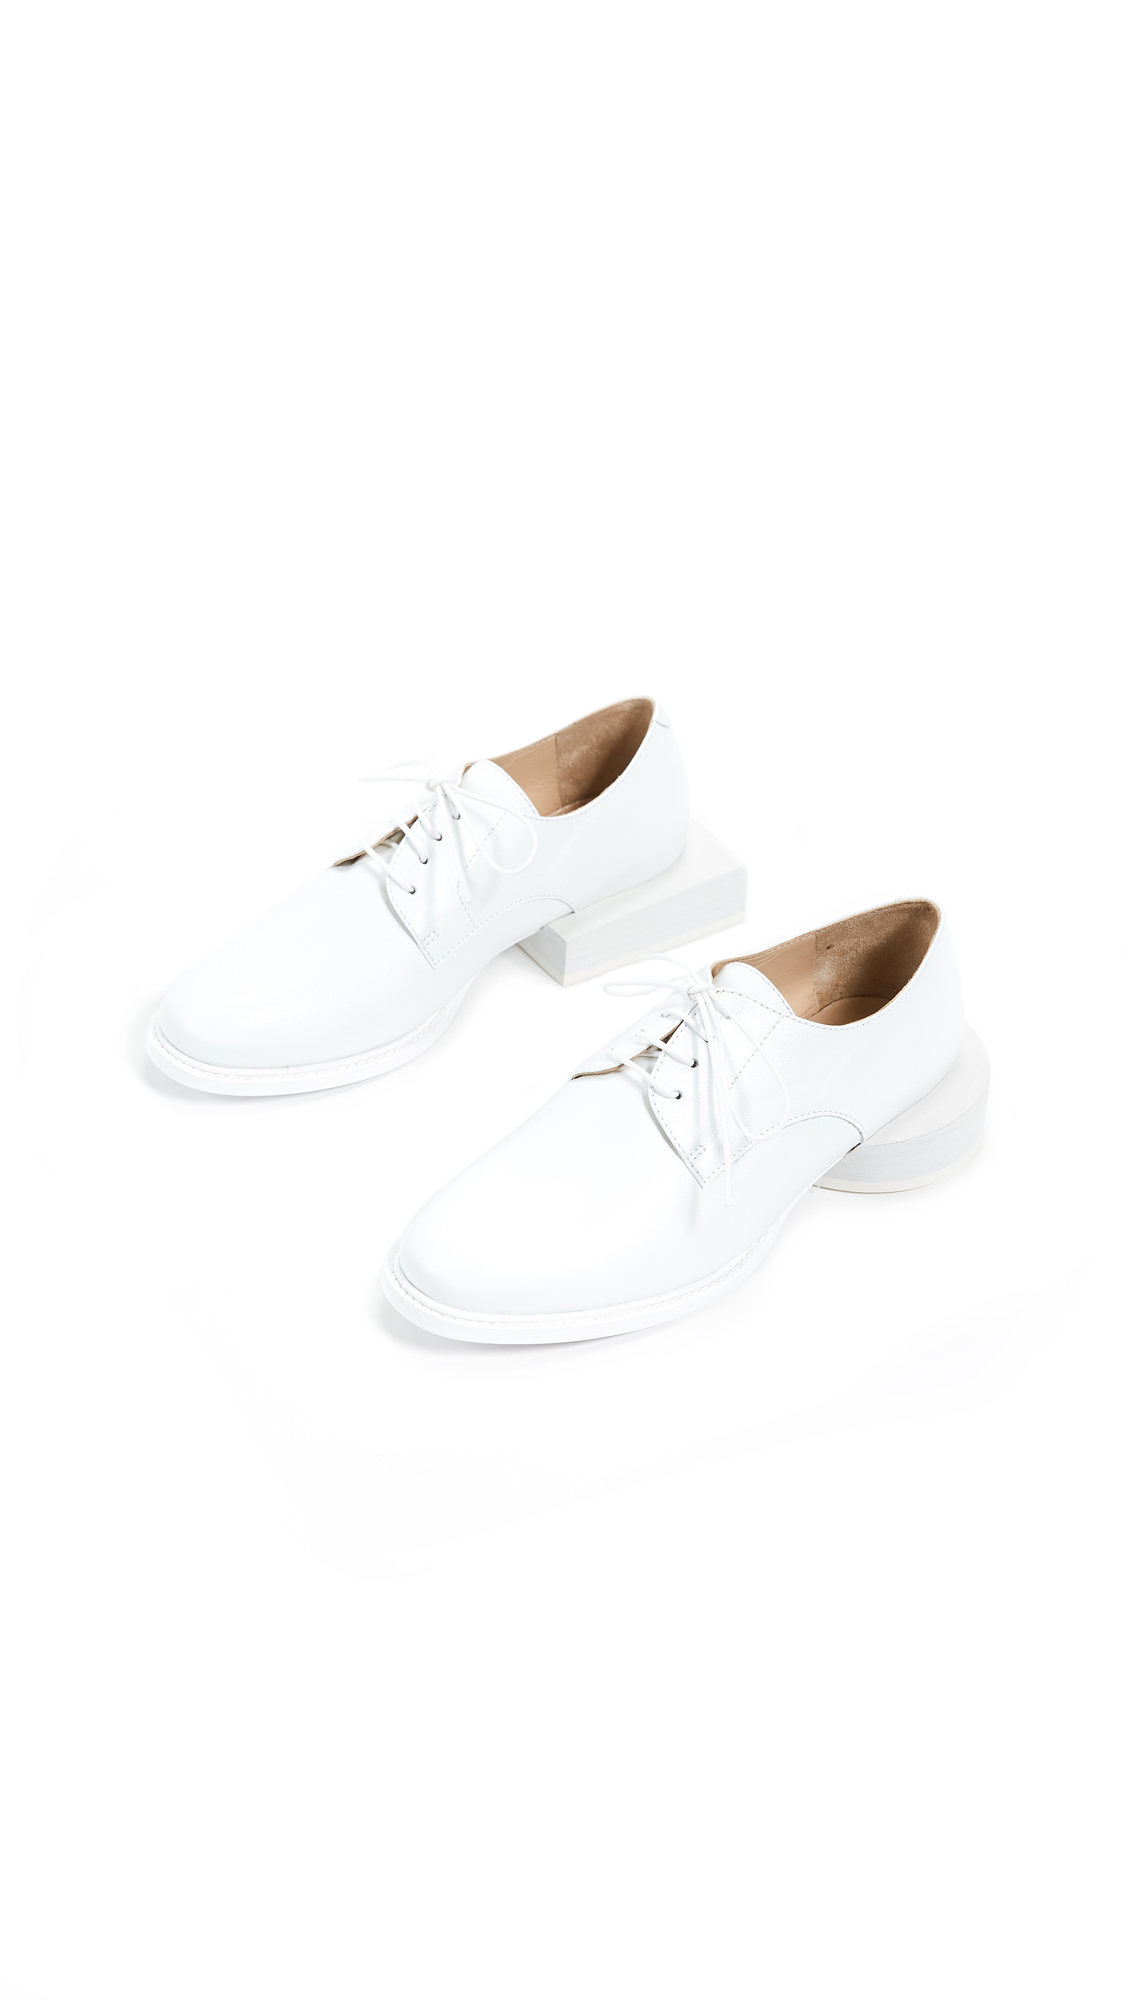 Jacquemus Les Chaussures Clown Oxfords - White